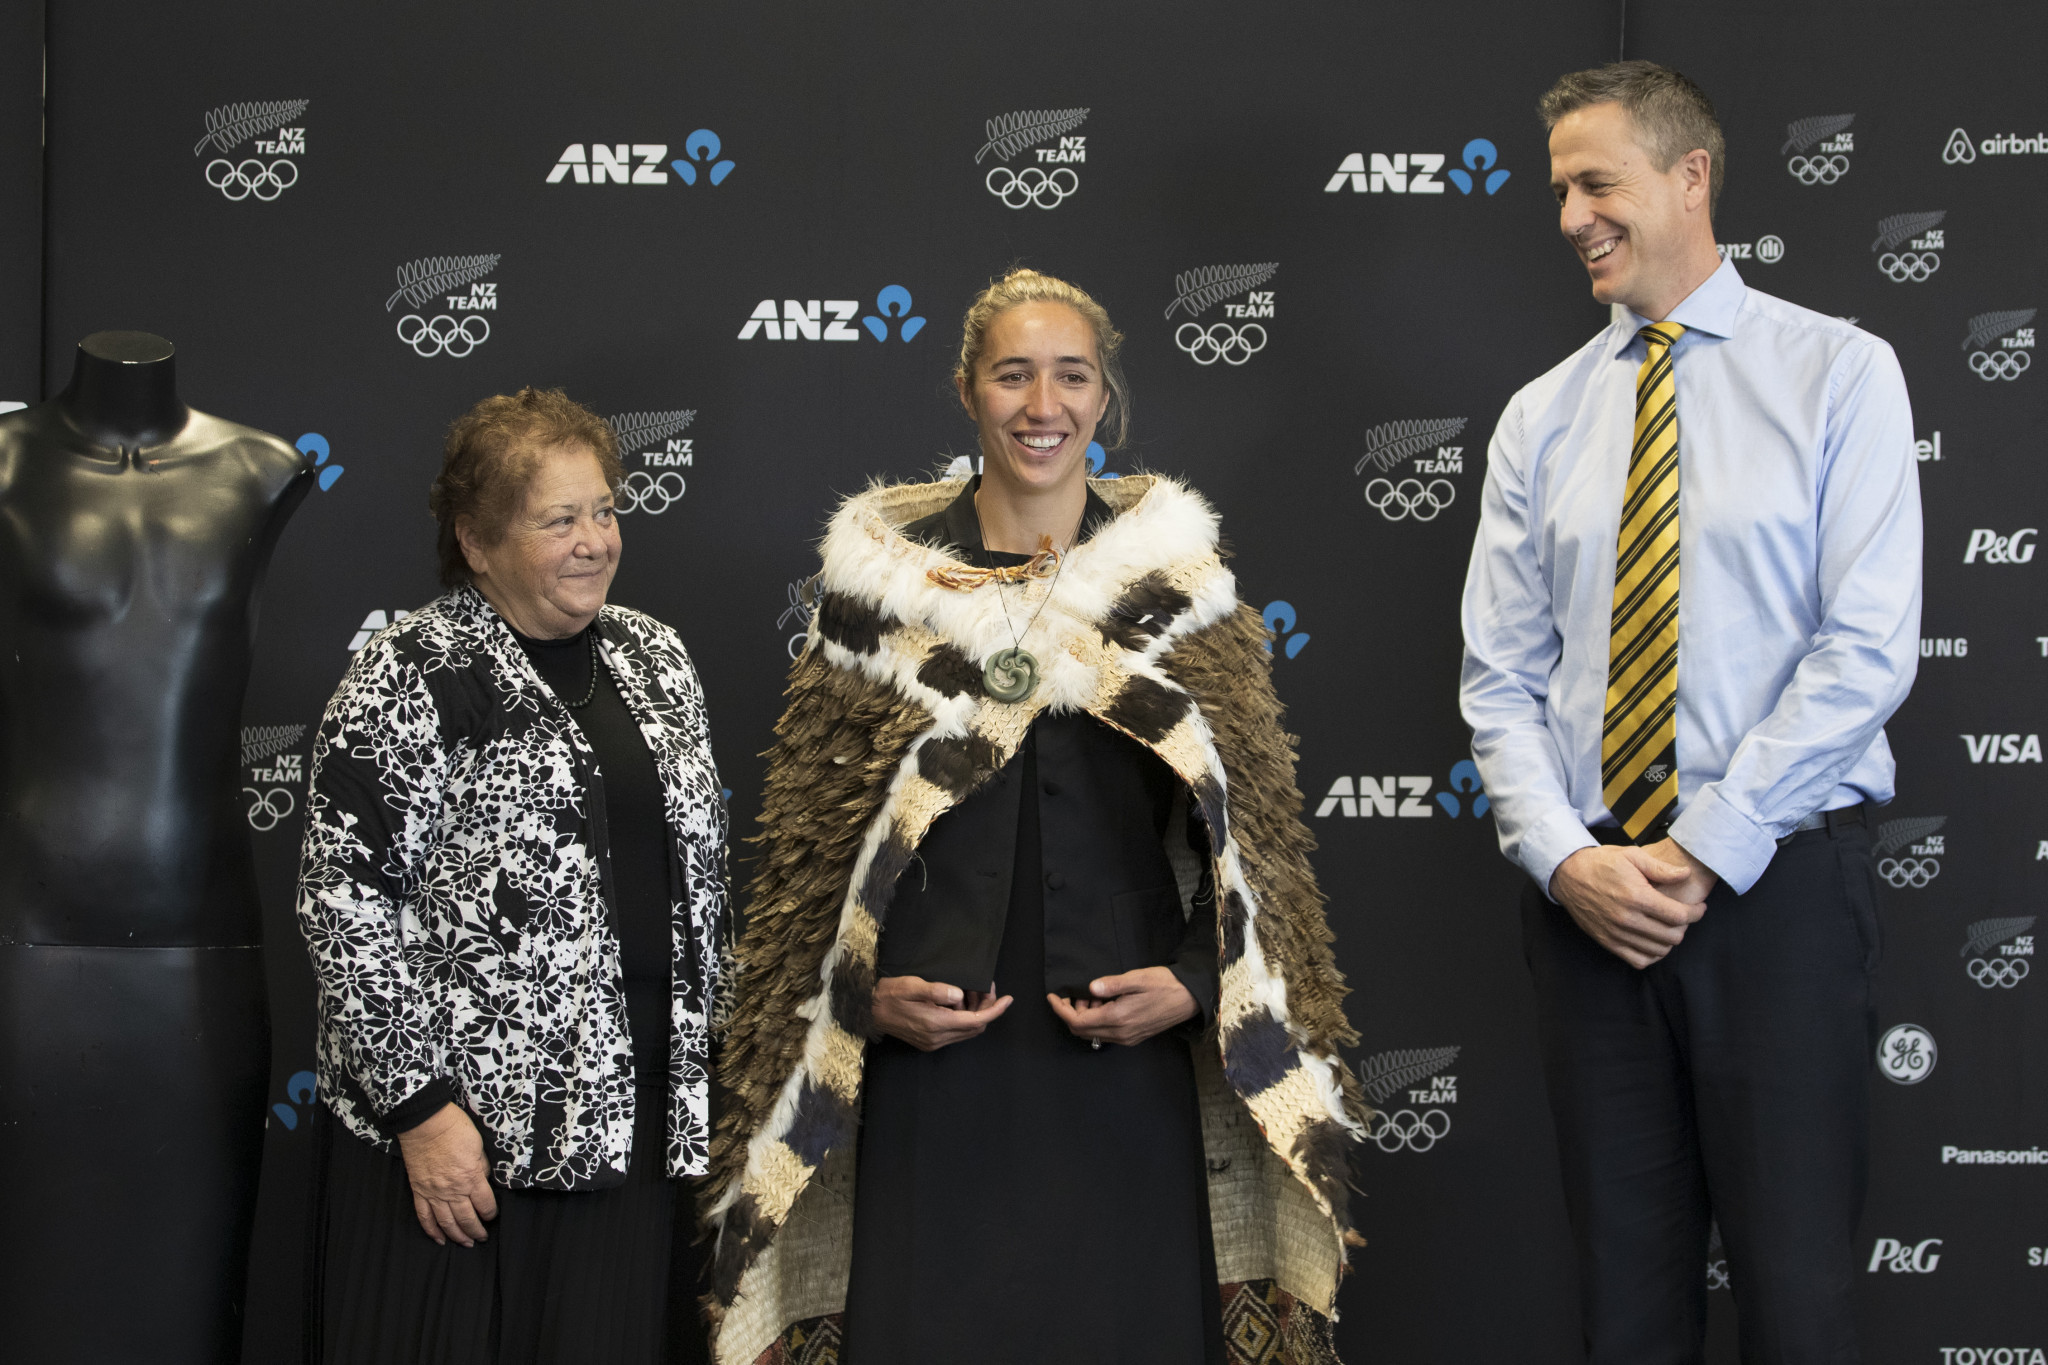 Sarah Hirini, cenrtre, captain of the New Zealand women's rugby sevens team, will be one of two flagbearers at the Olympic Opening Ceremony on July 23 ©Getty Images